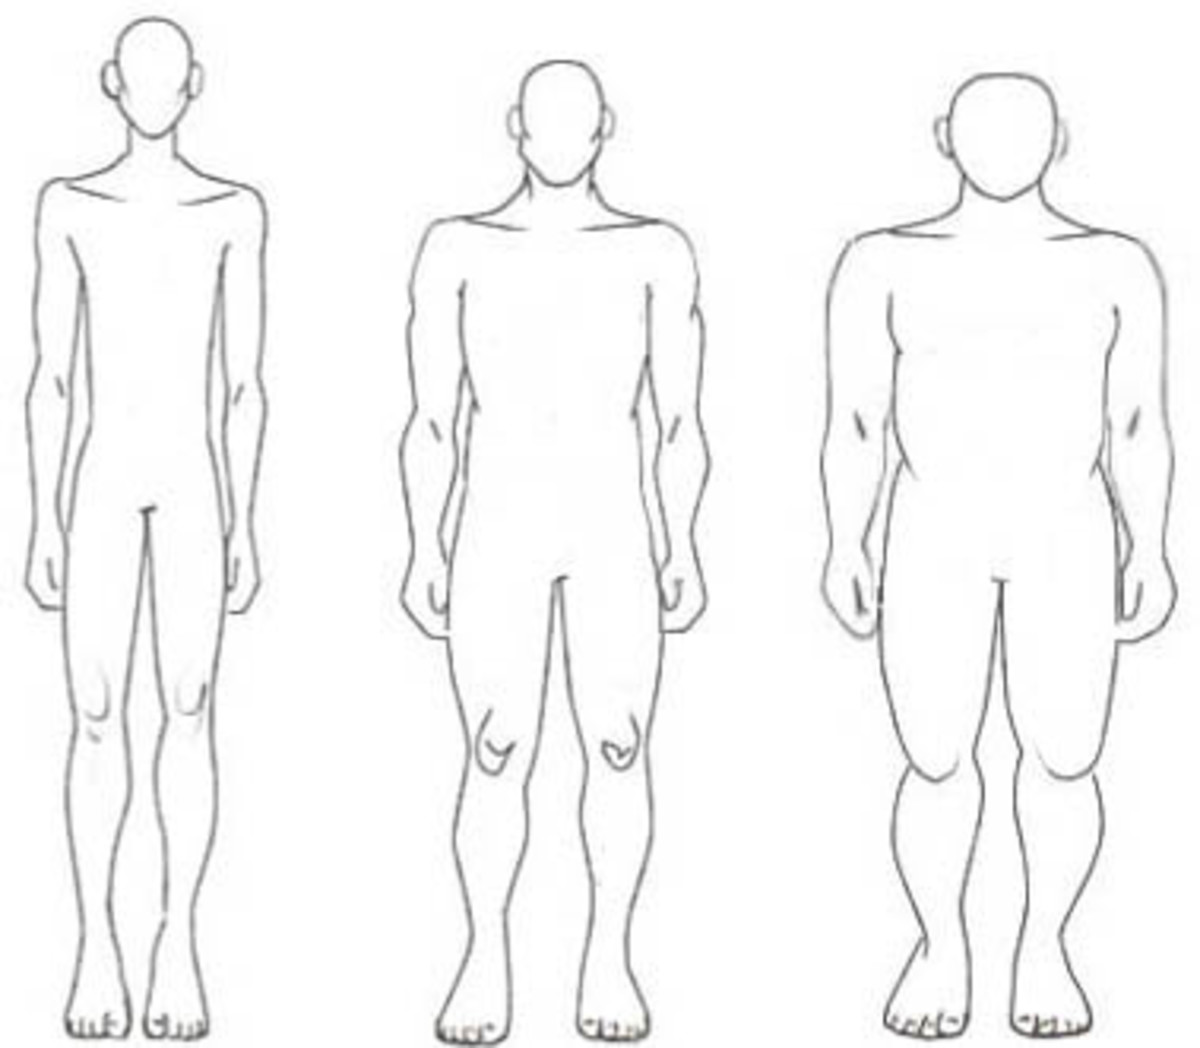 Drawing the Human Figure: Shapes, Sizes & Body Types